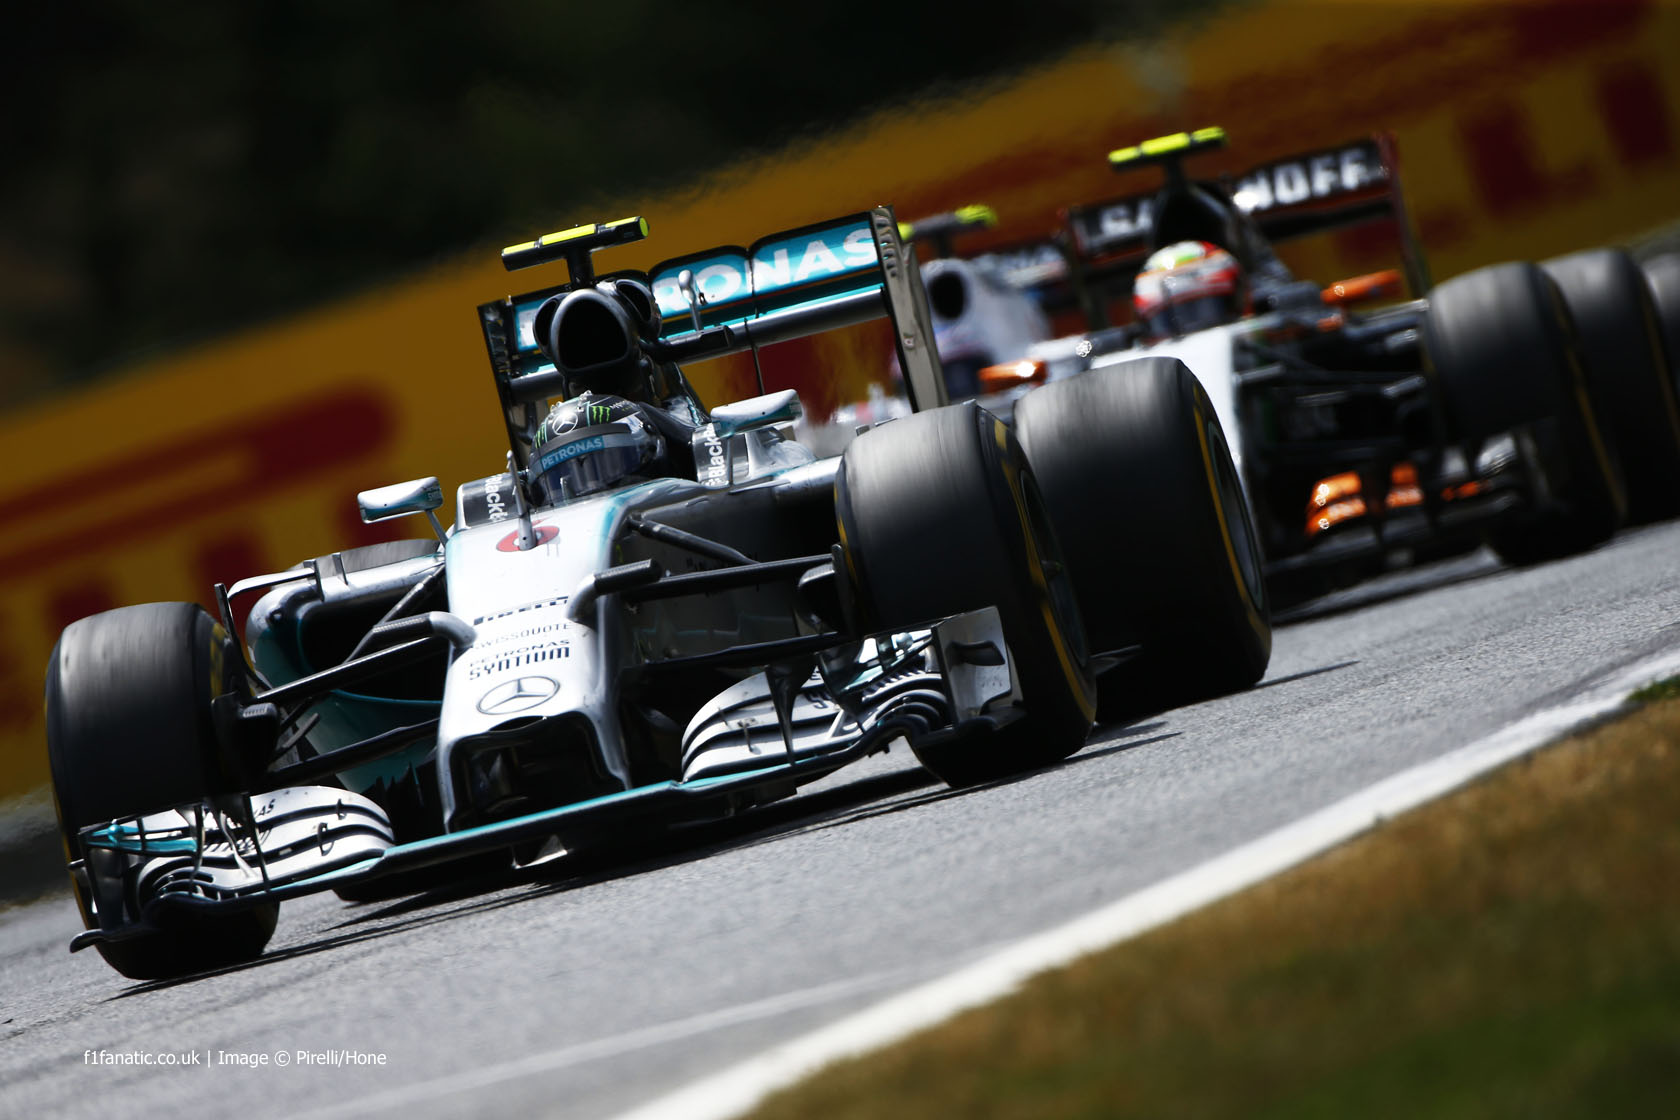 Nico Rosberg, Mercedes, Red Bull Ring, 2014